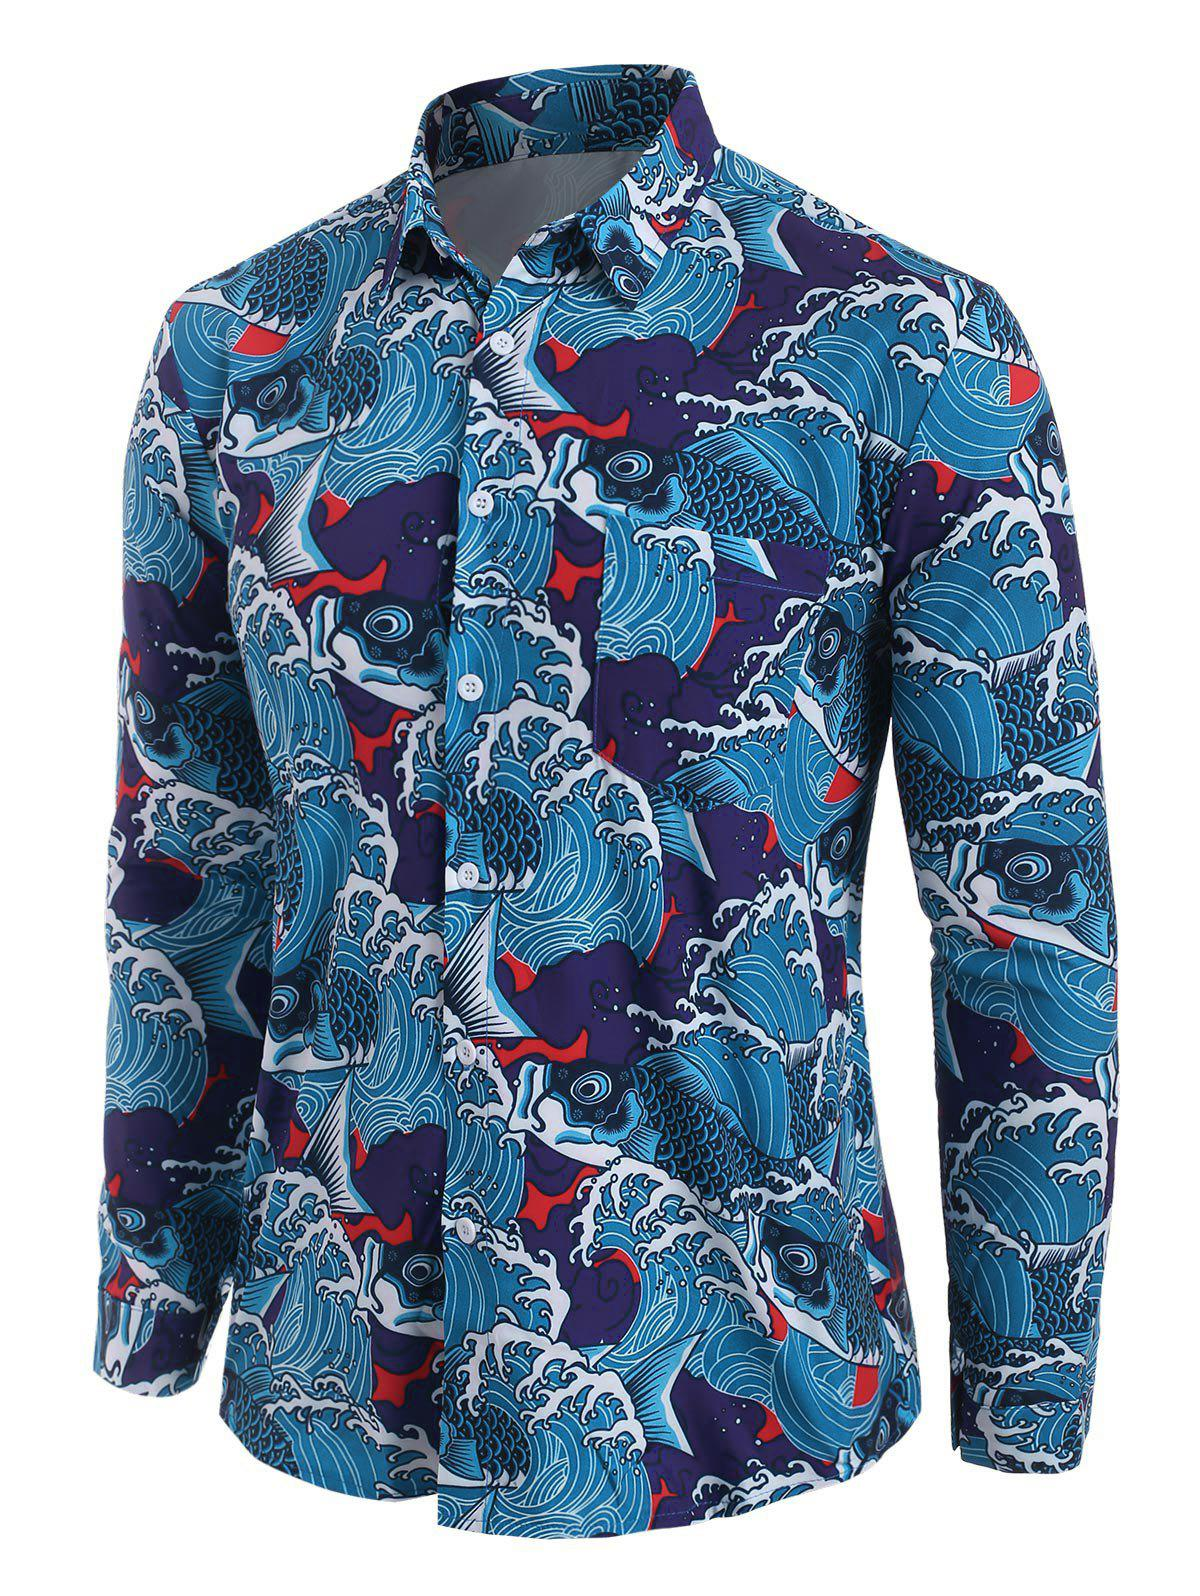 Shop Sea Waves Fish Print Pocket Button Up Shirt